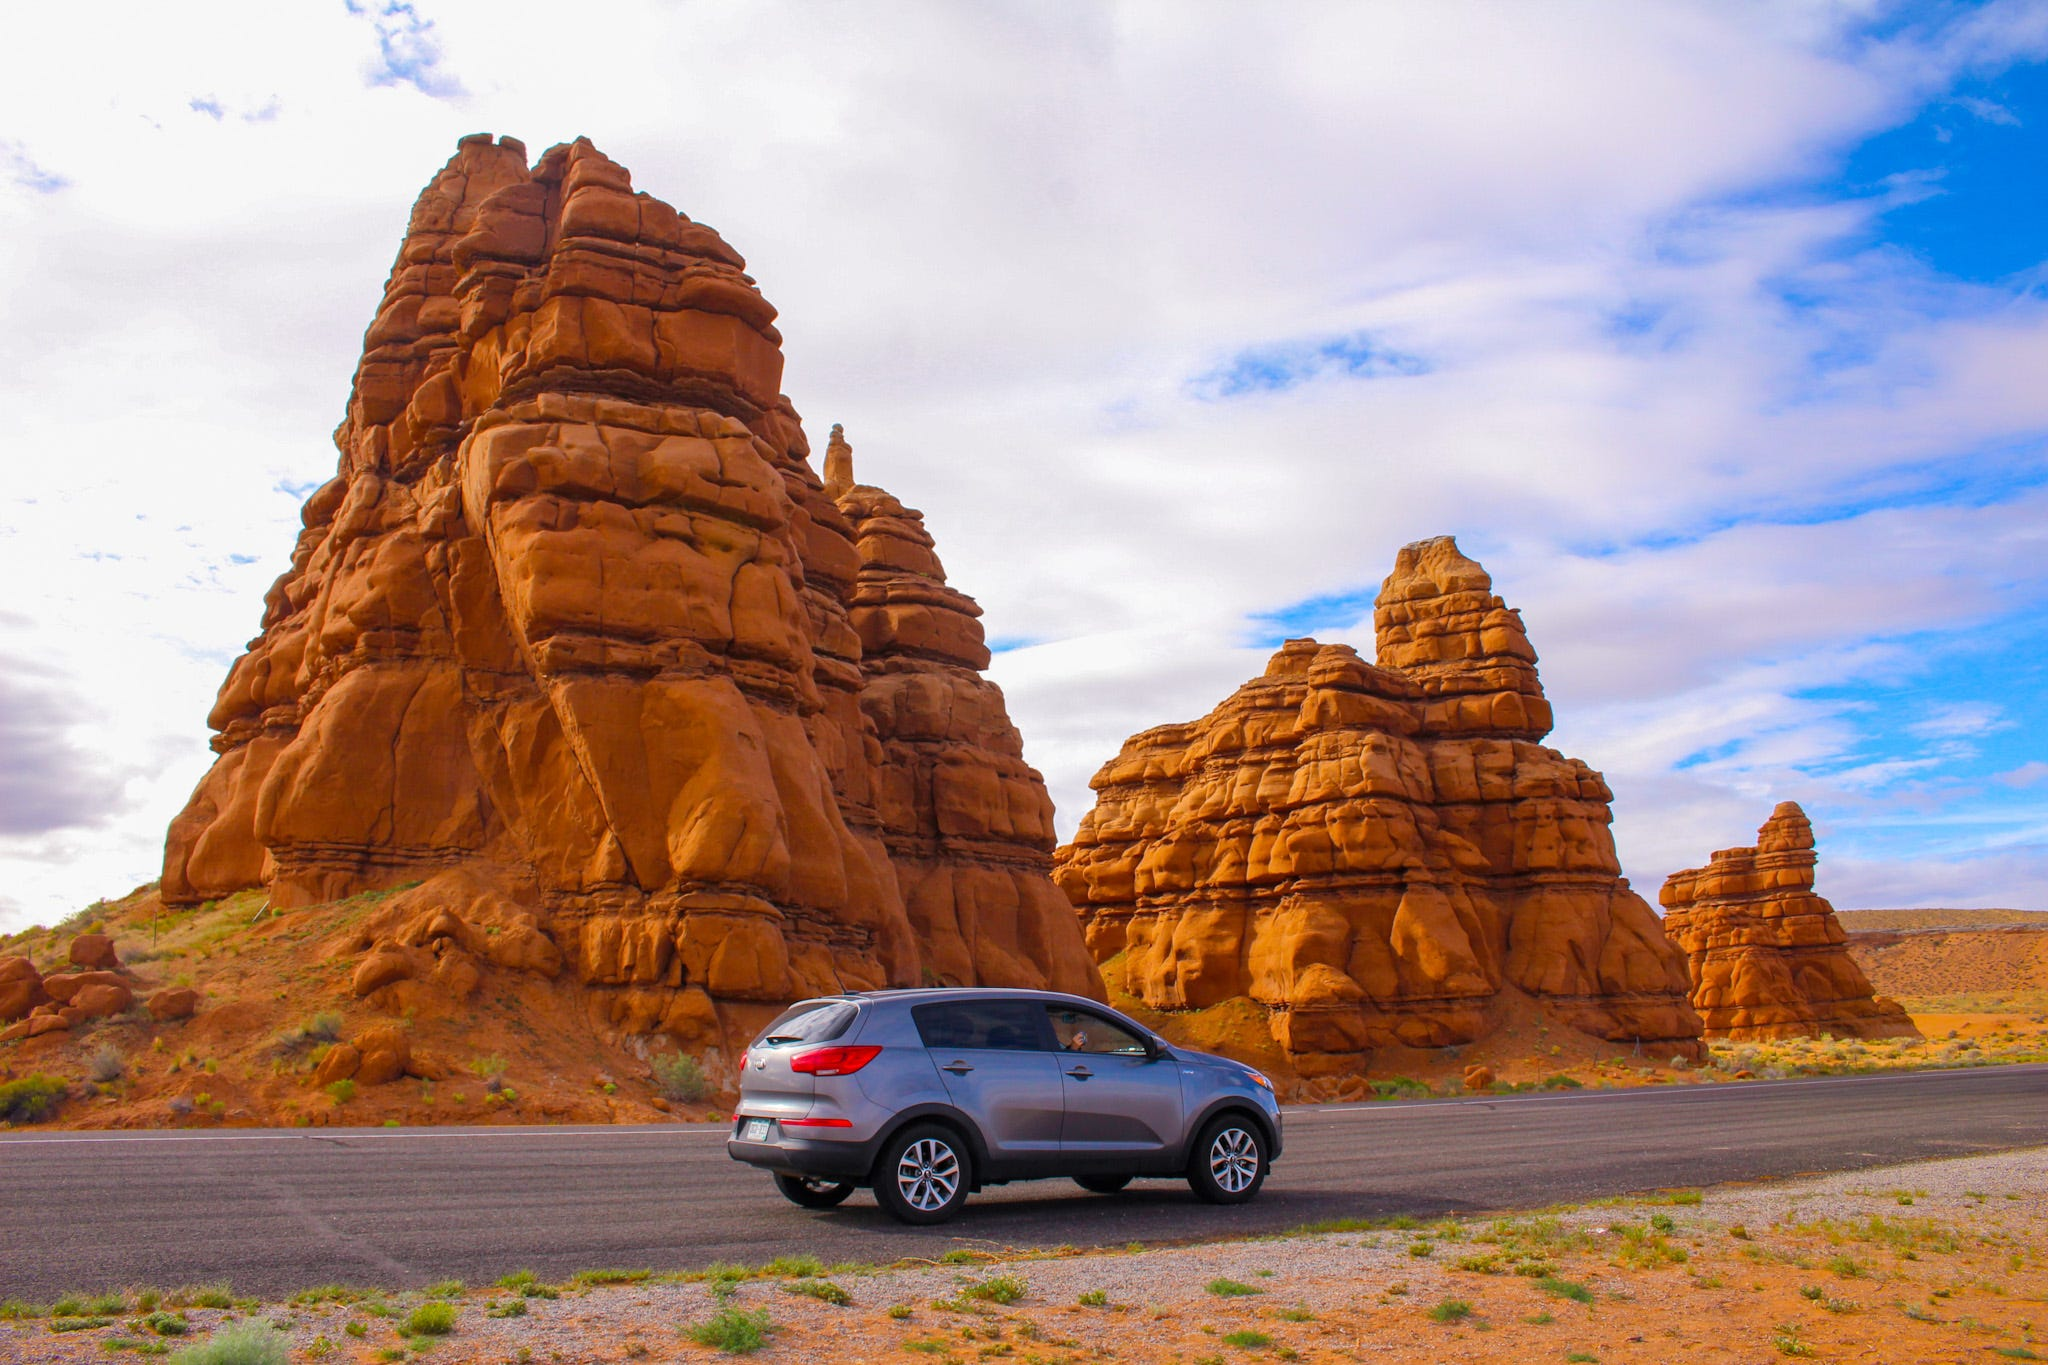 What should you drive for a summer road trip? The benefits (and drawbacks) of RVs, rental cars and other options